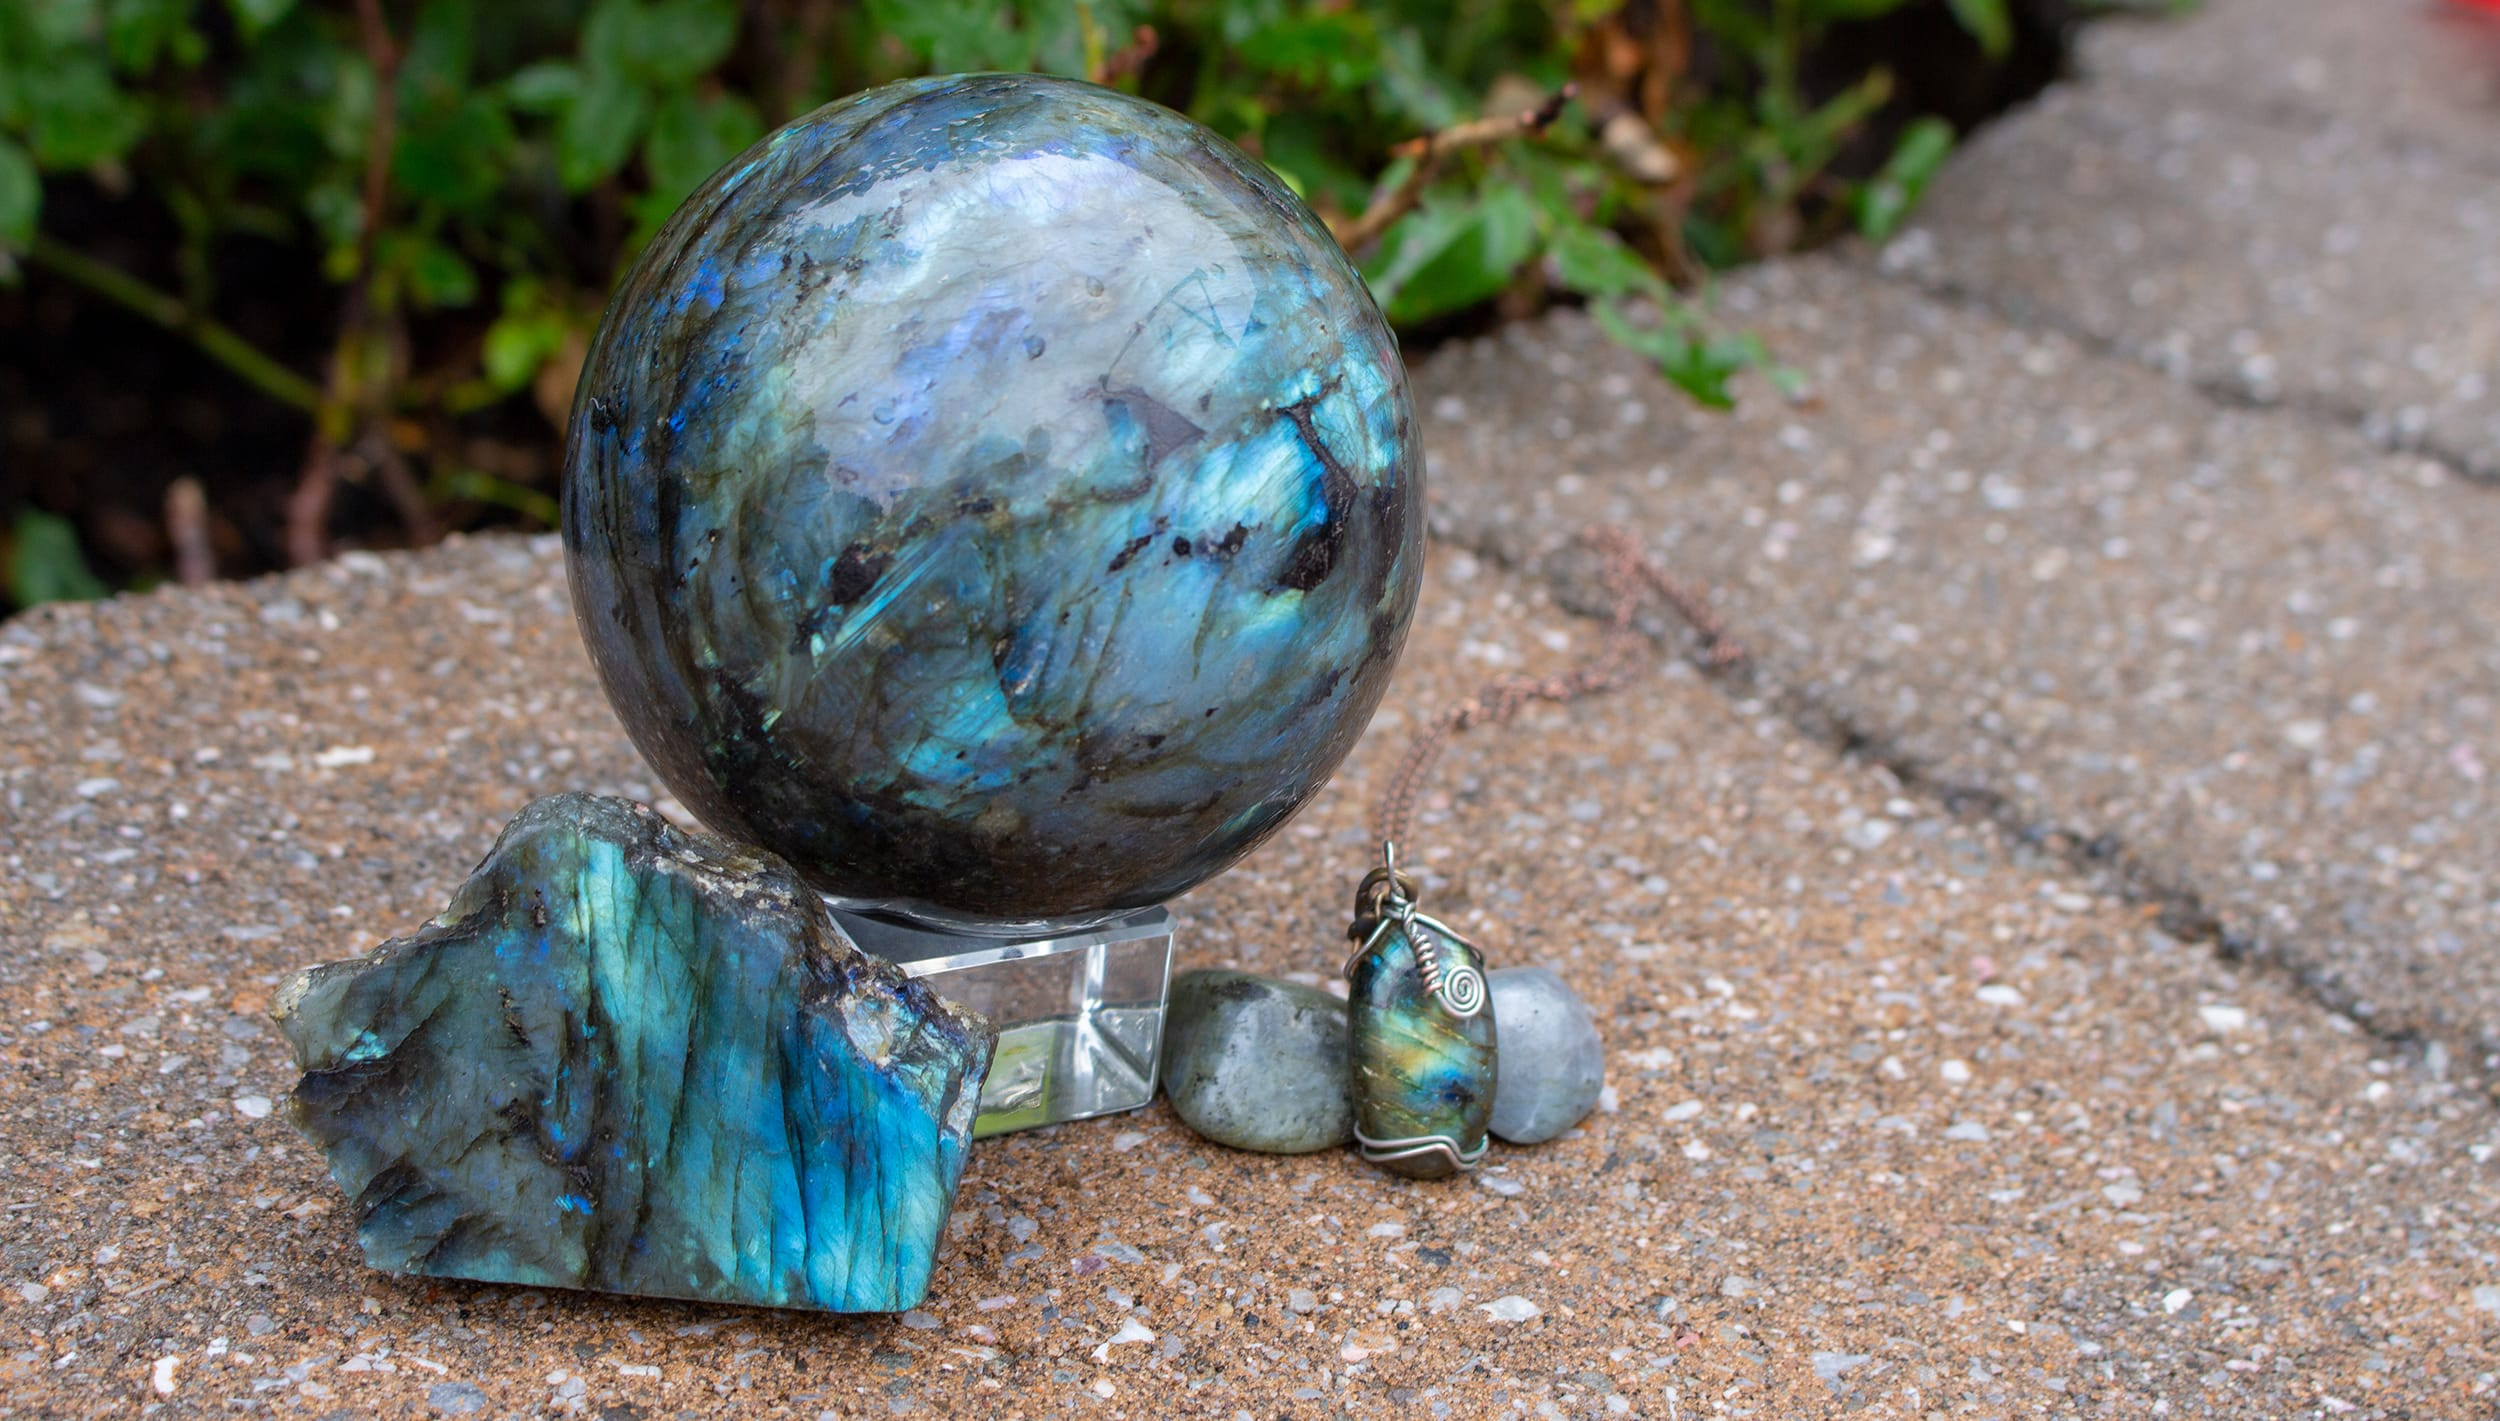 Labradorite Meanings, Properties and Uses